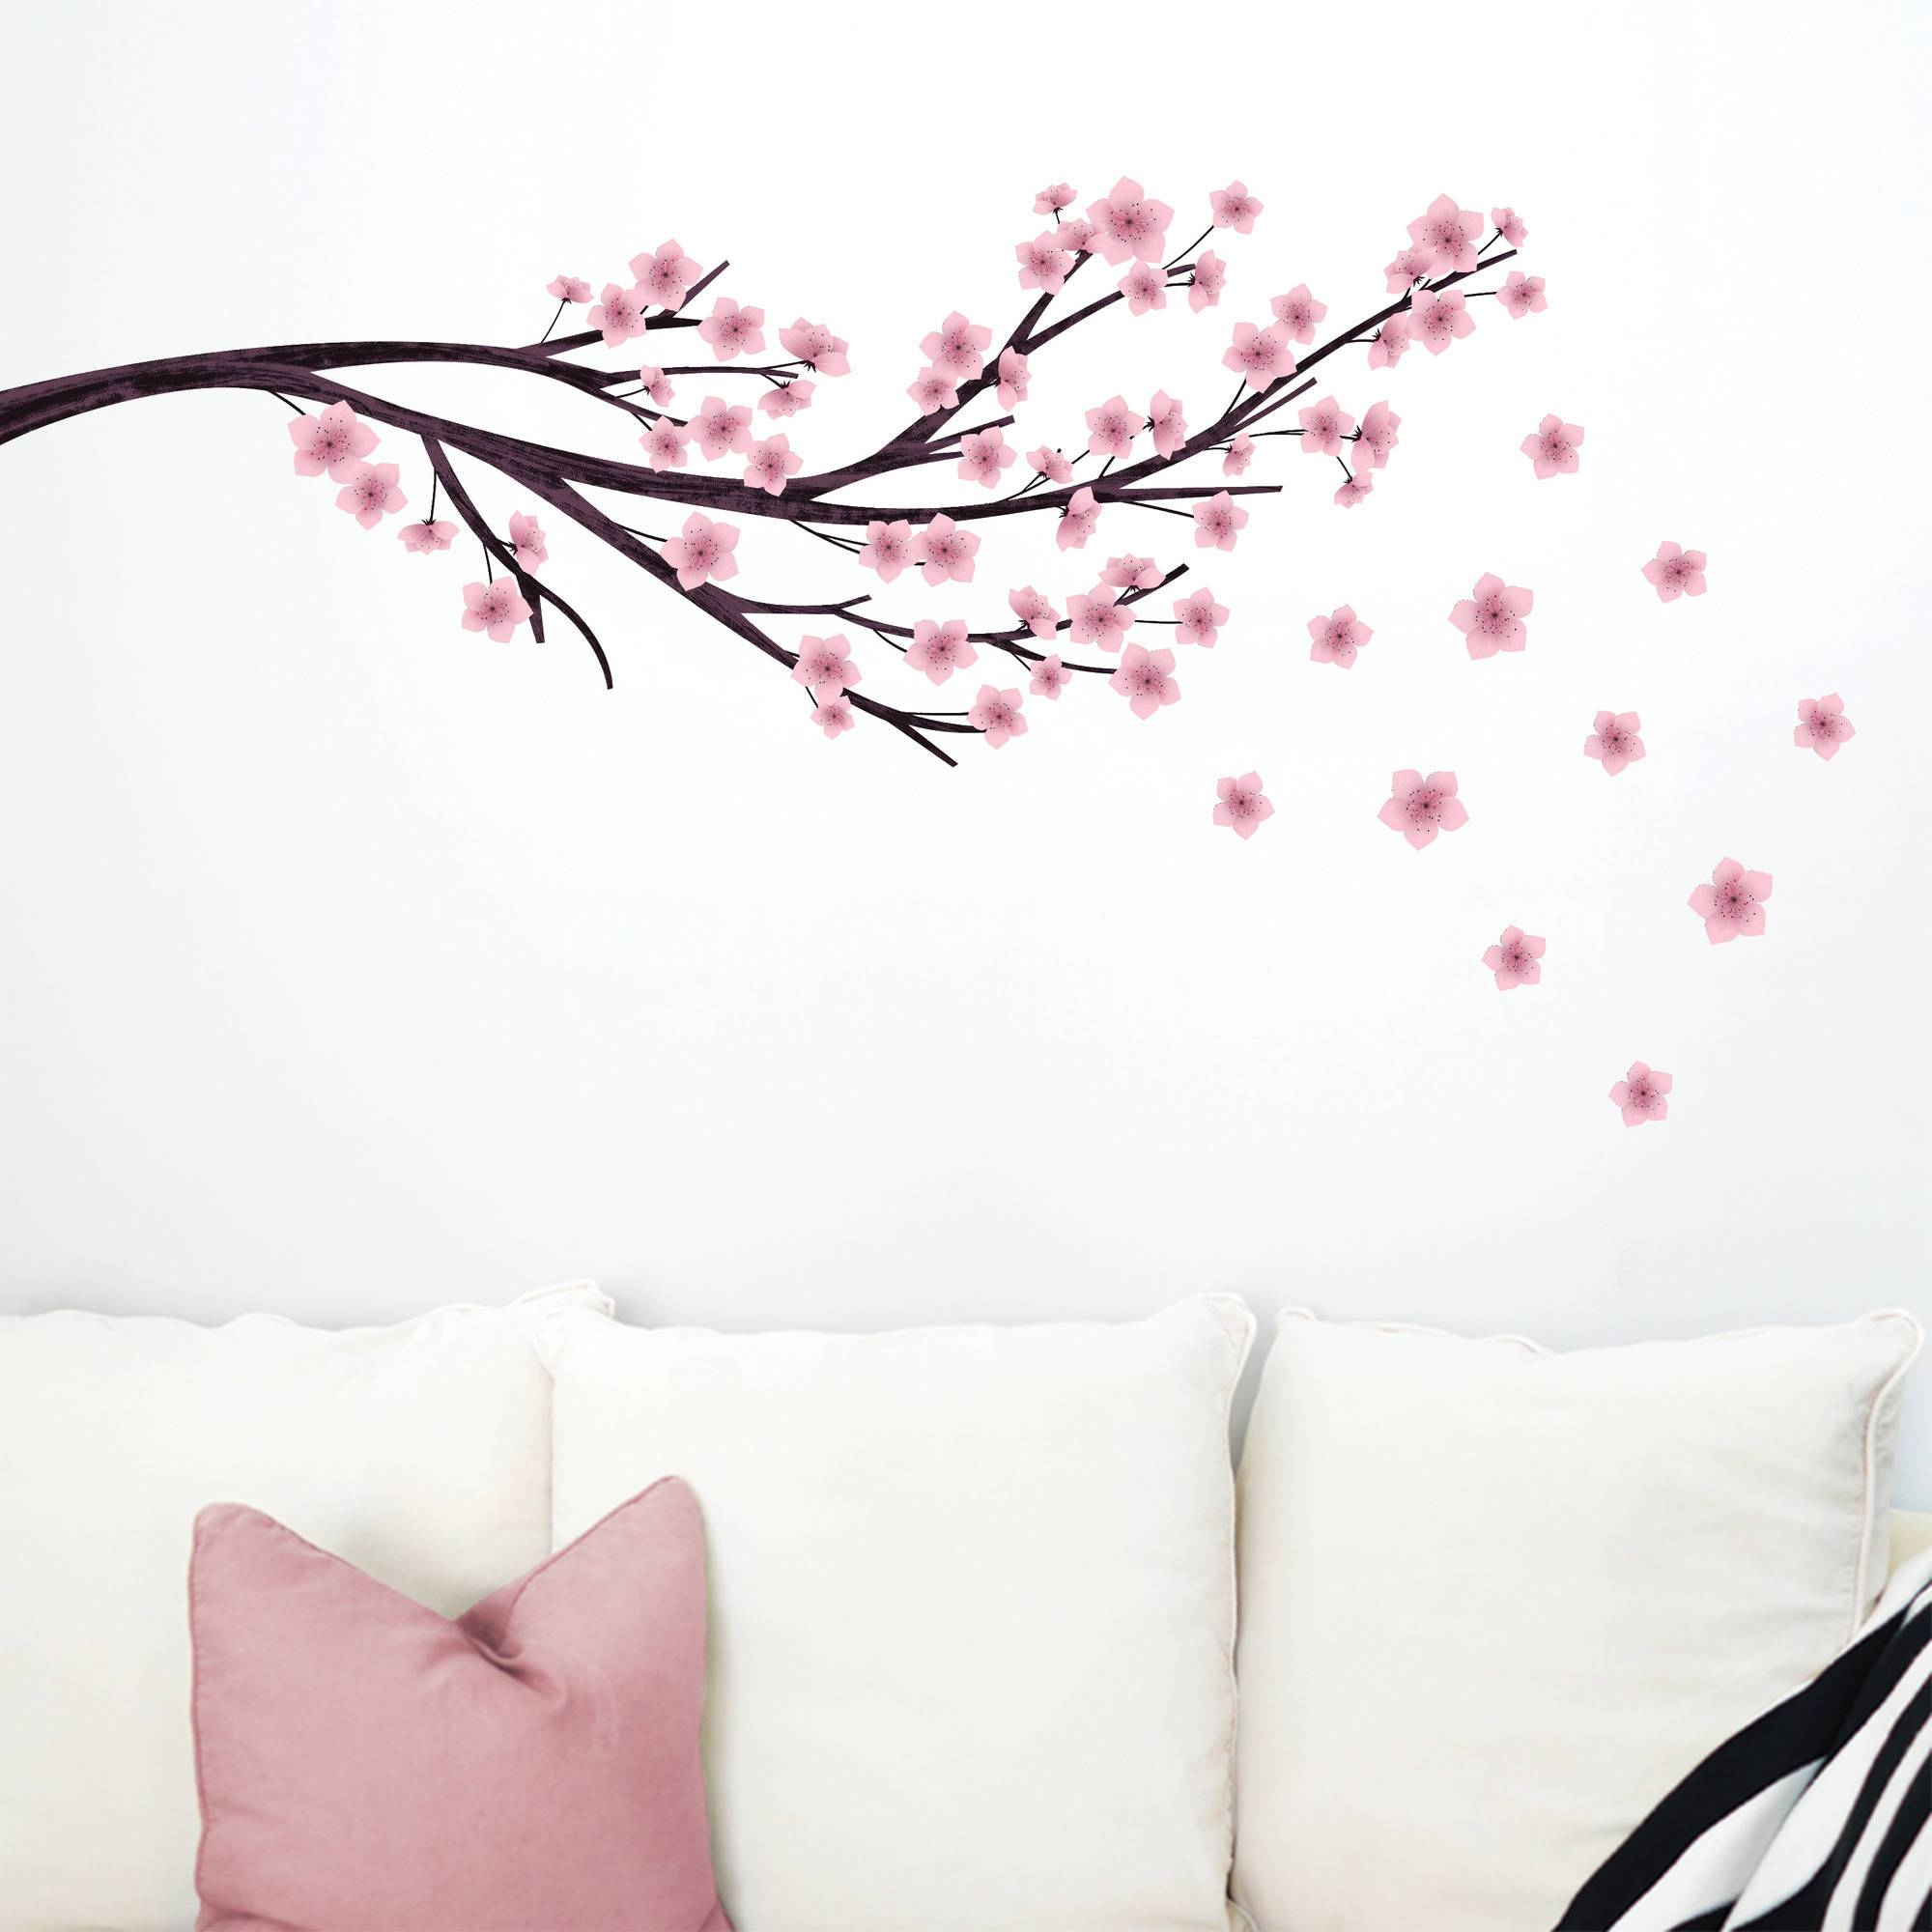 Dcwv Vinyl Decal Cherry Blossom With Birds Wall Decal – Walmart Inside Most Up To Date Walmart Wall Stickers (View 14 of 25)